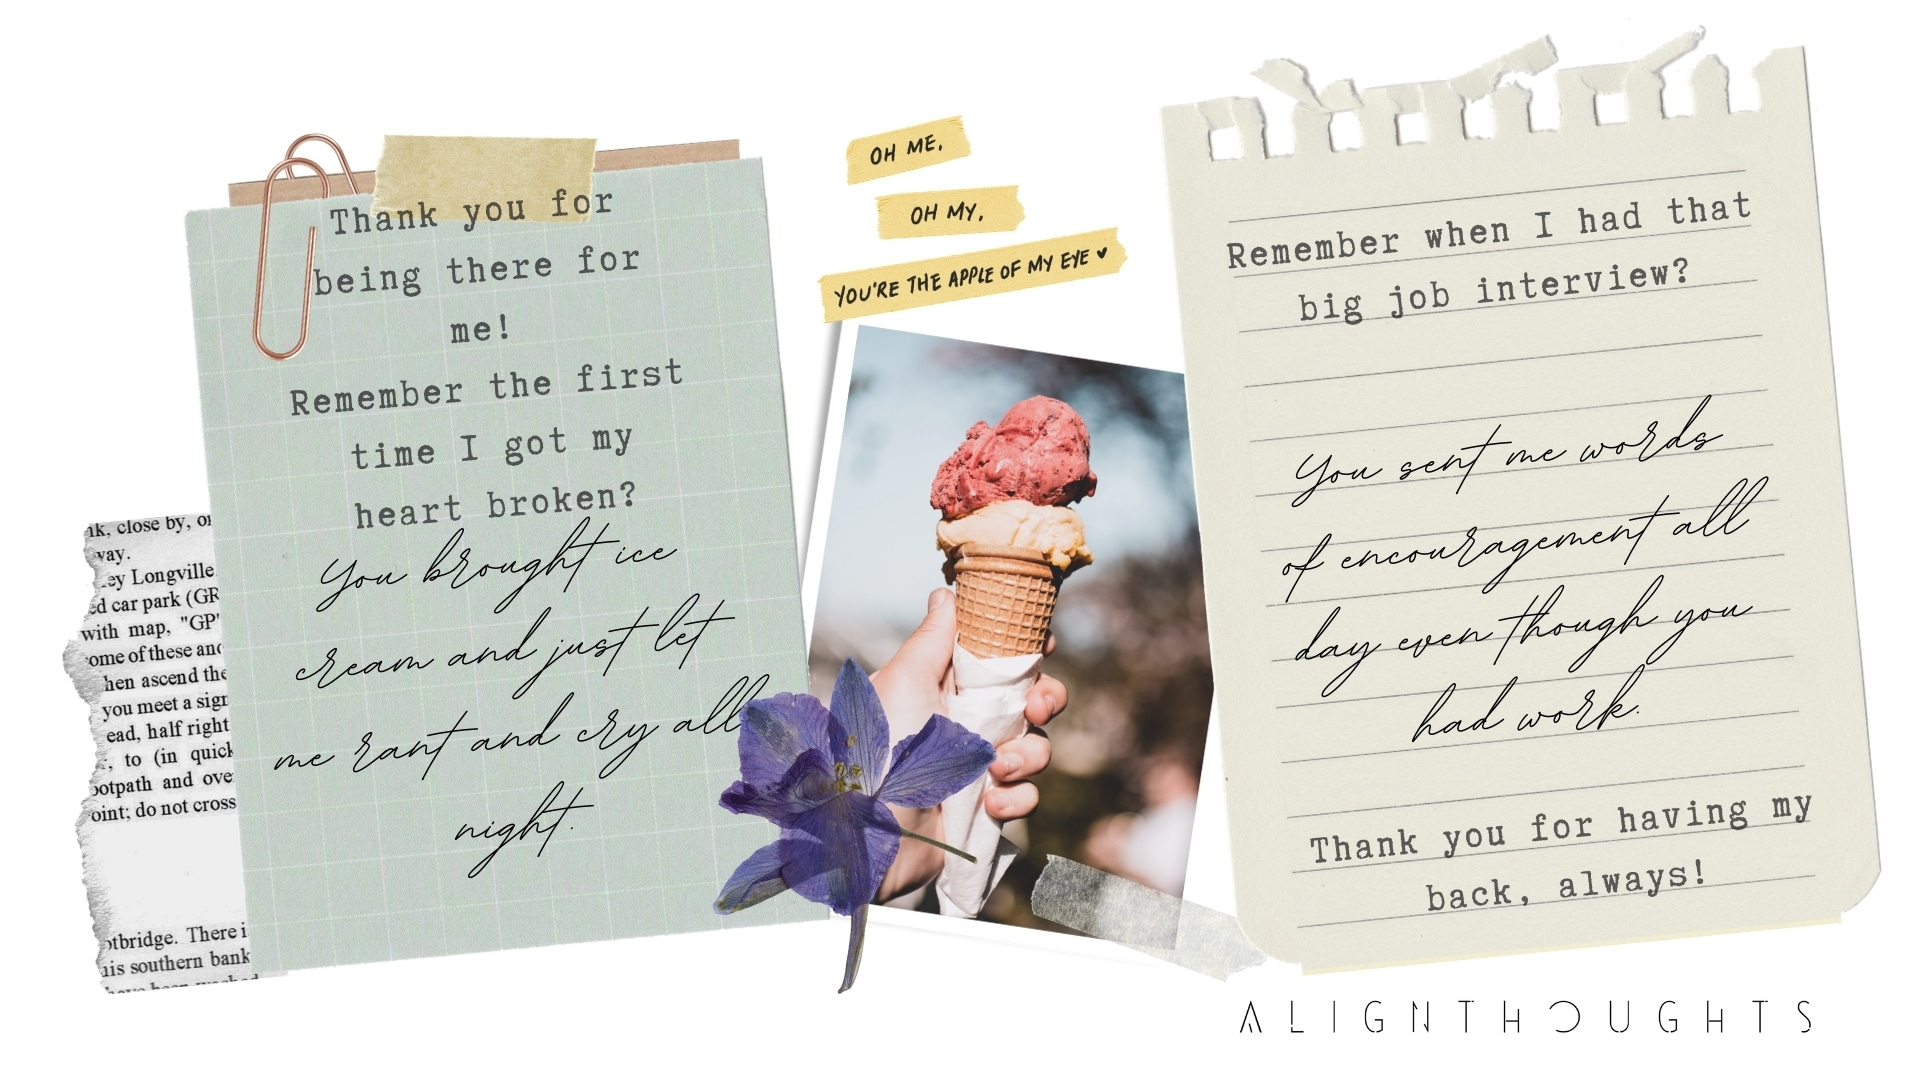 gratitude letter to friend2-alignthoughts